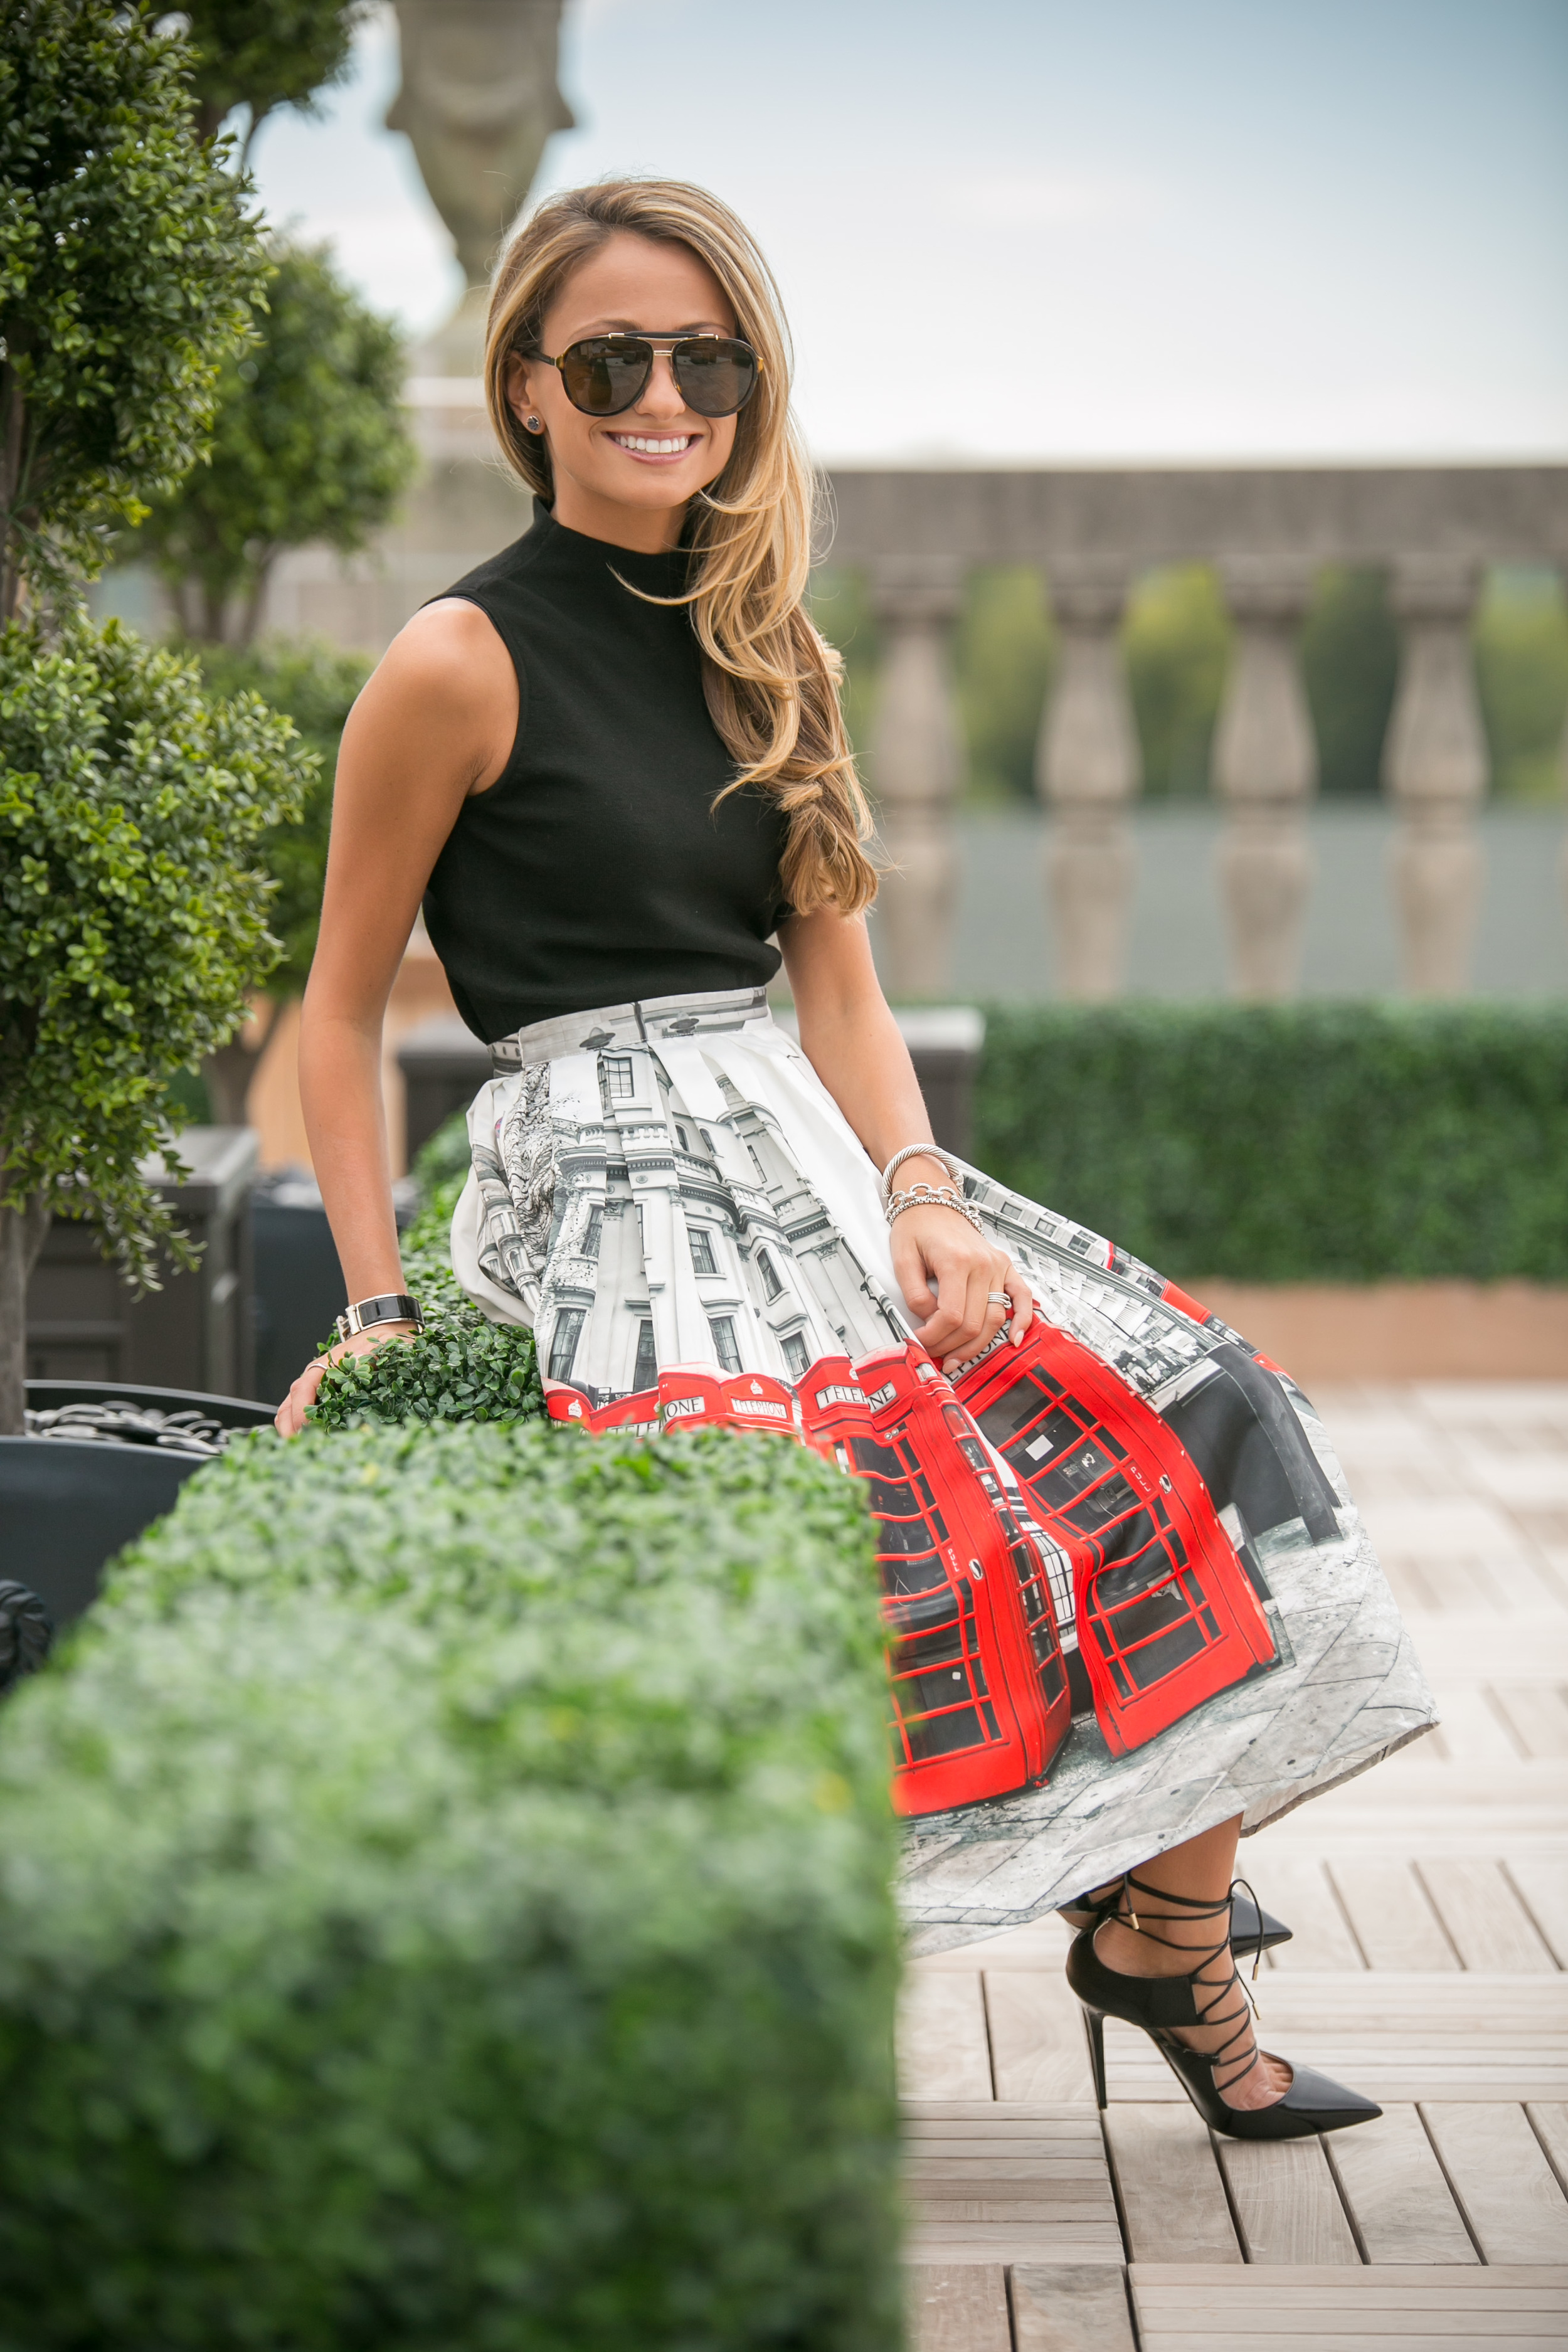 Top: Milly |Skirt: Chicwish |Pumps: Jimmy Choo     Dino Petrocelli Photography